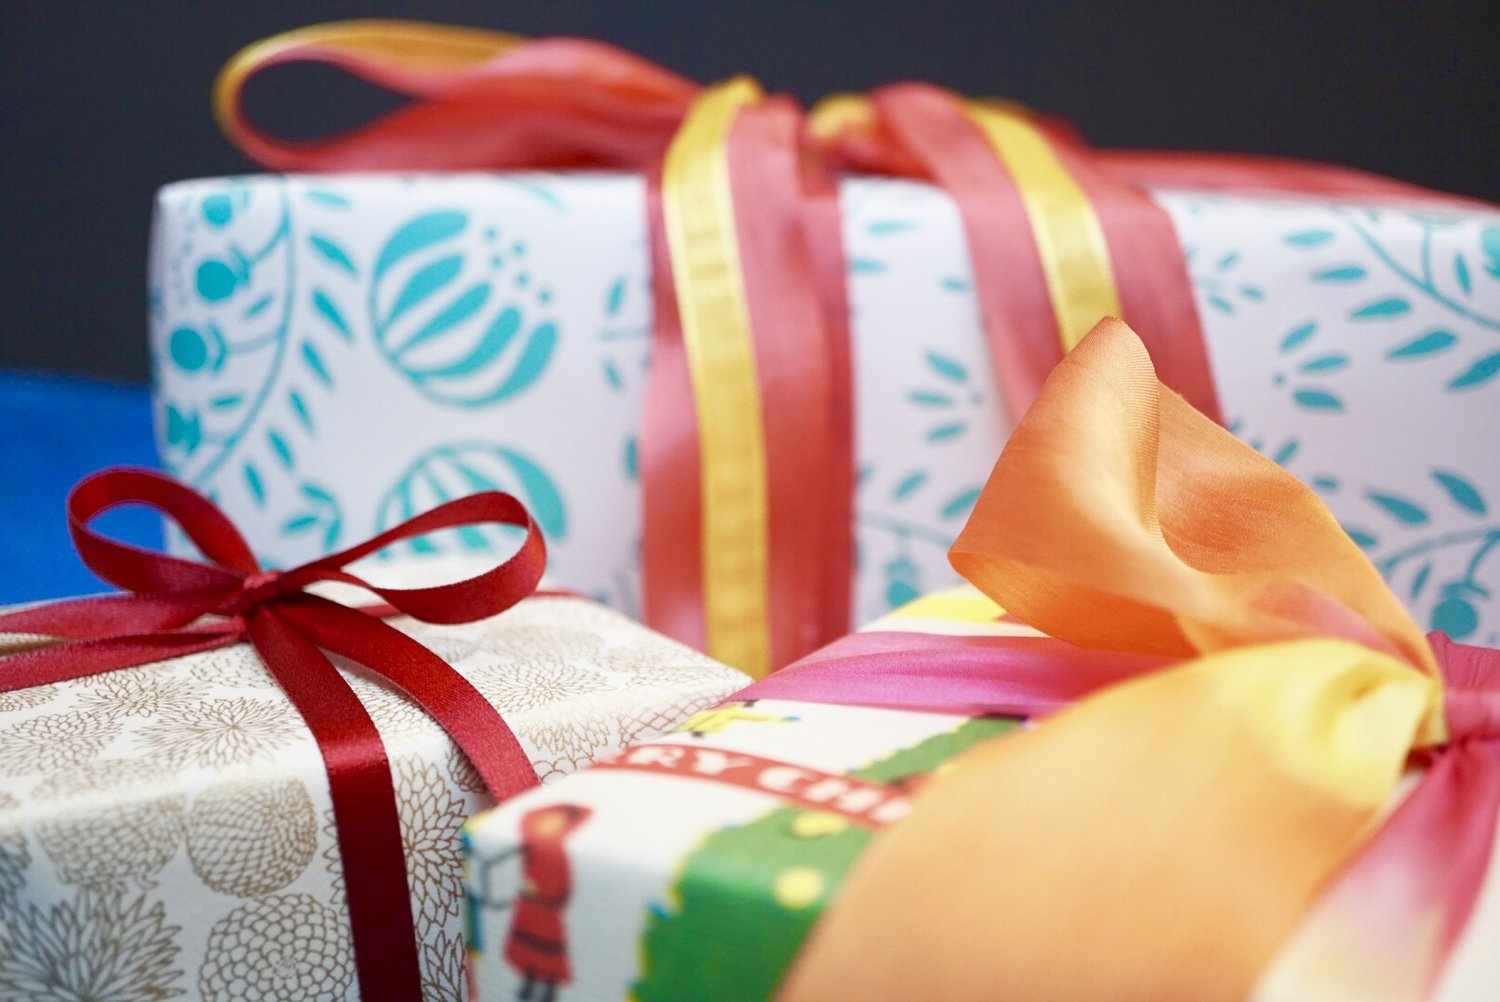 Christmas gift wrapping ideas at paper ya paper ya on granville island christmas gift wrapping ideas at paper ya negle Image collections